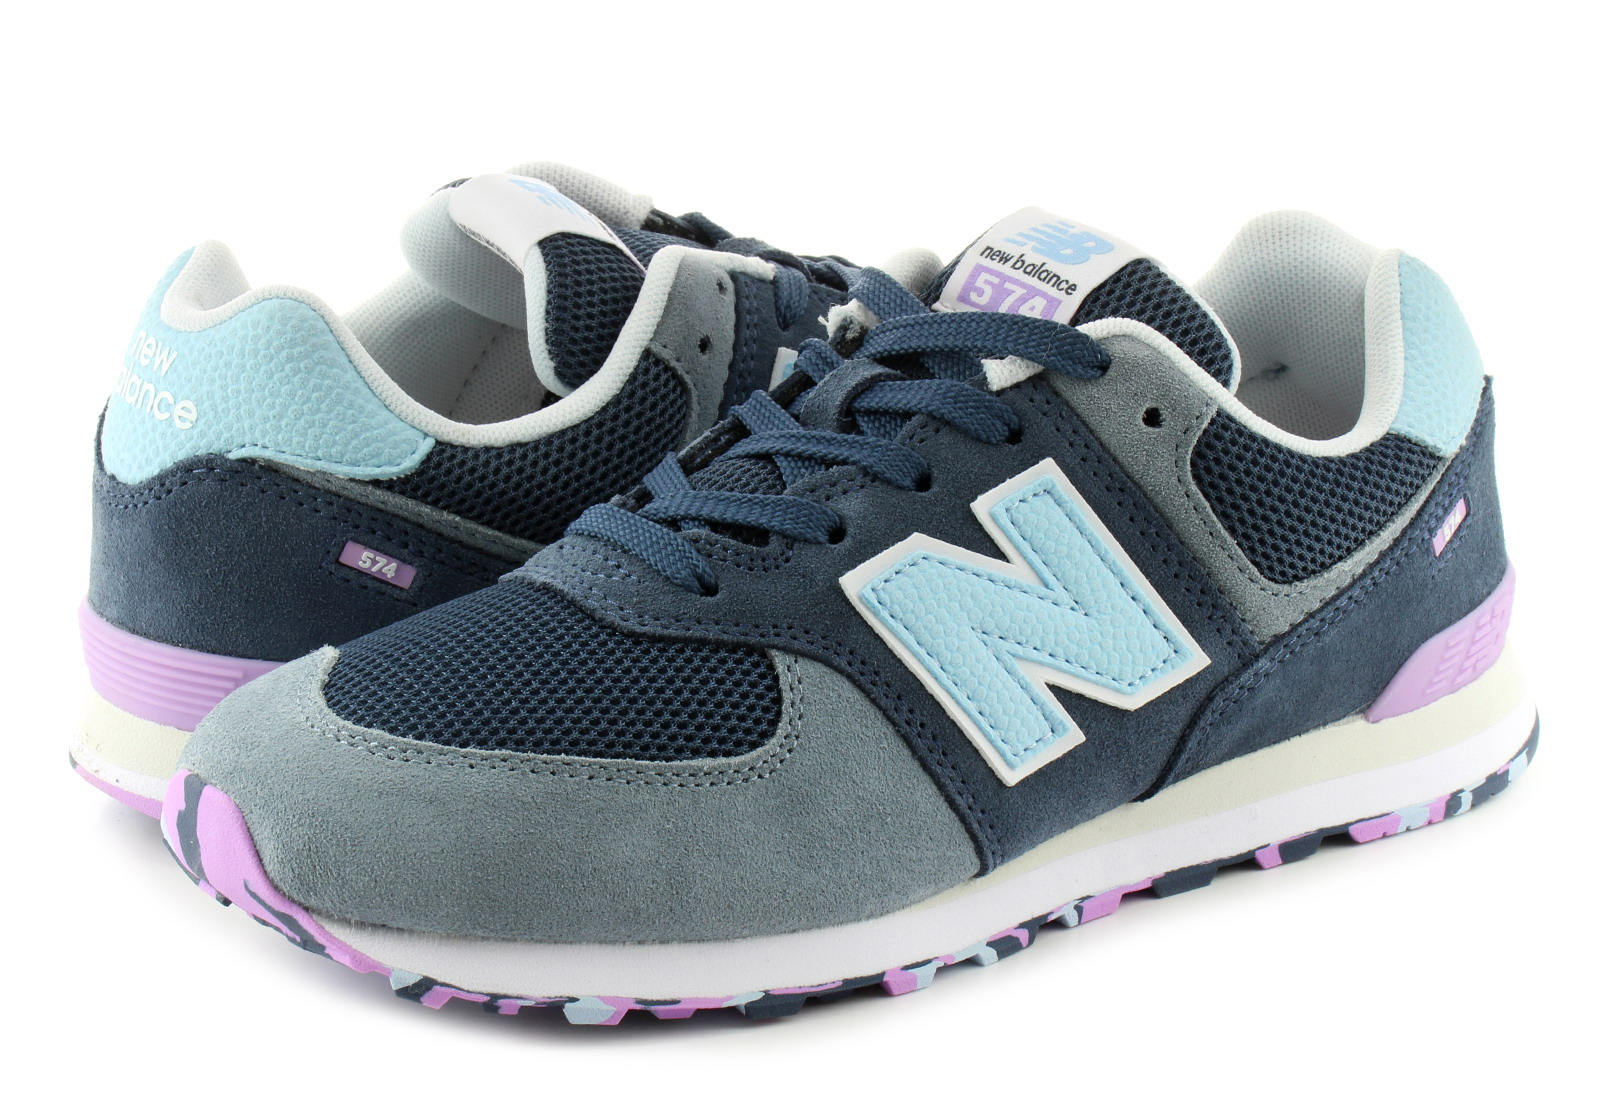 New Balance Shoes Gc574